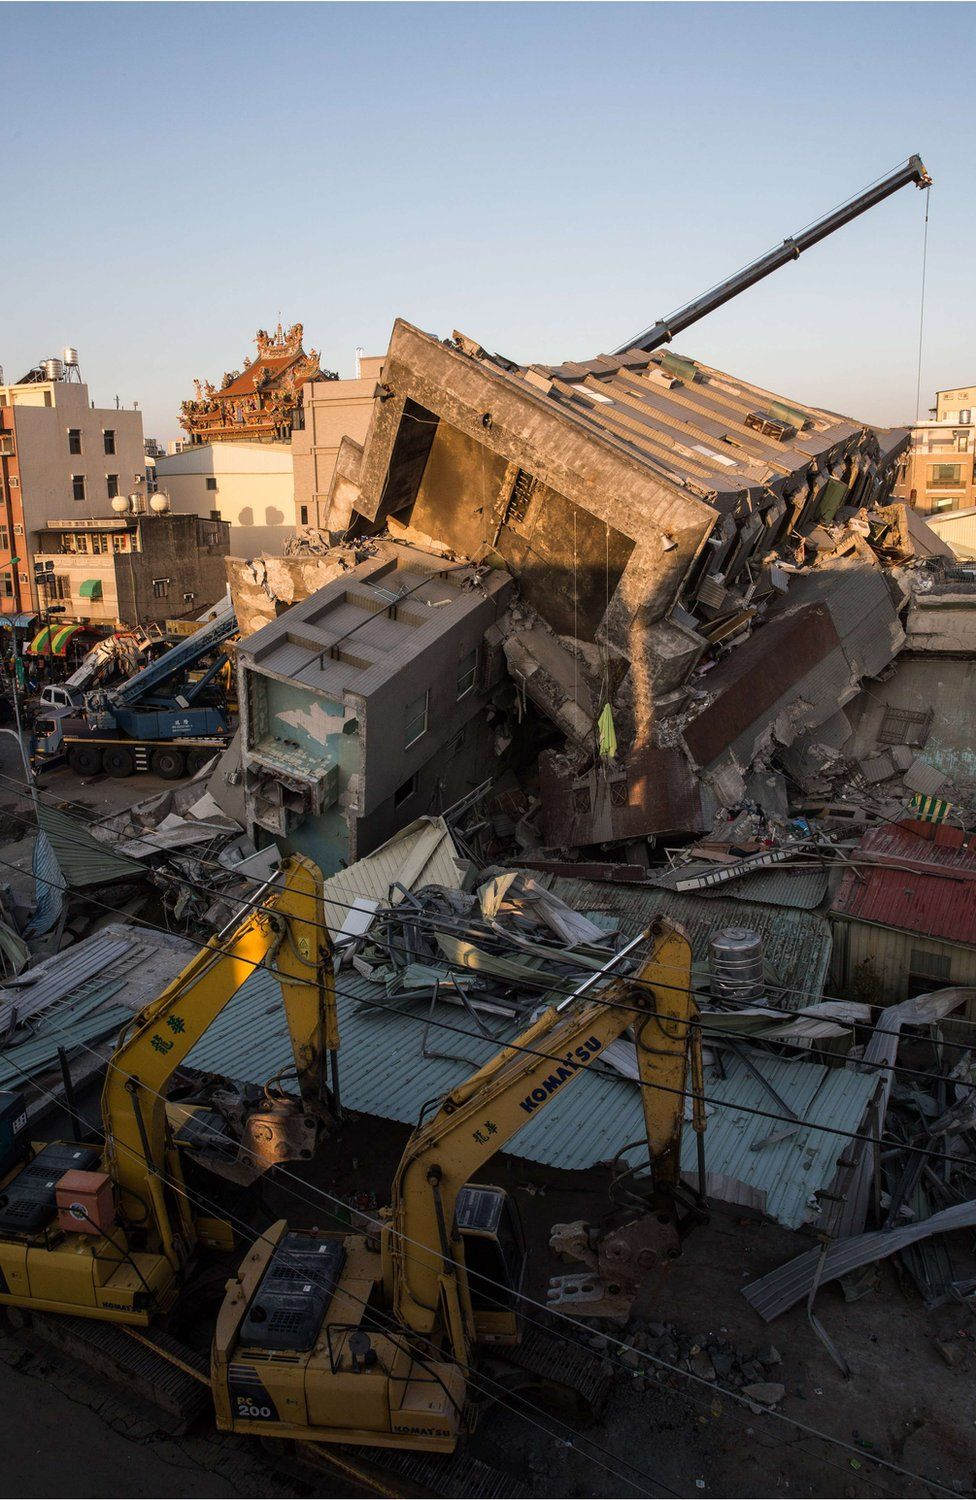 Cranes at the site of the collapsed building in Tainan, Taiwan (8 Feb 2016)